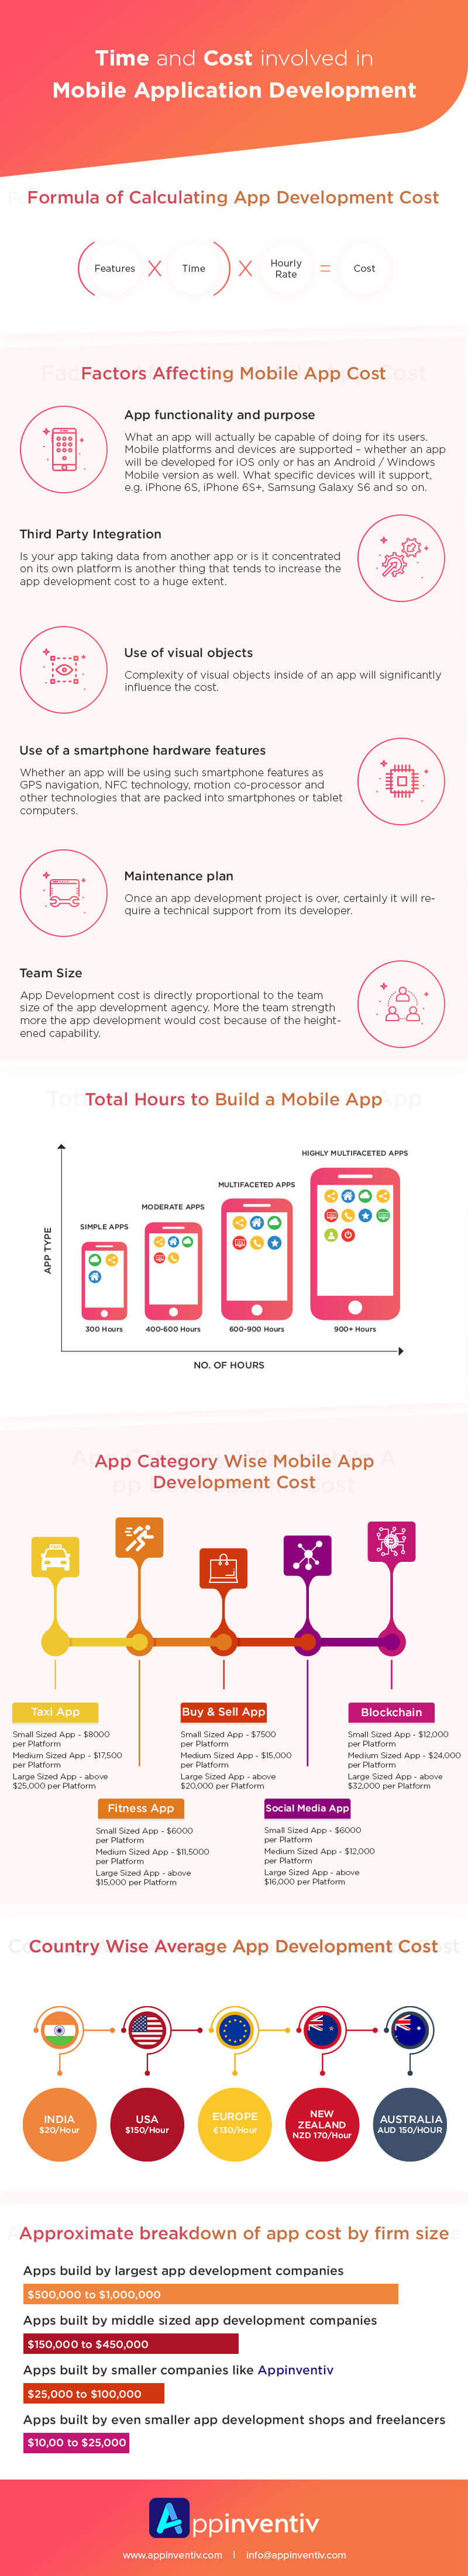 Time and Cost of Mobile Application Development